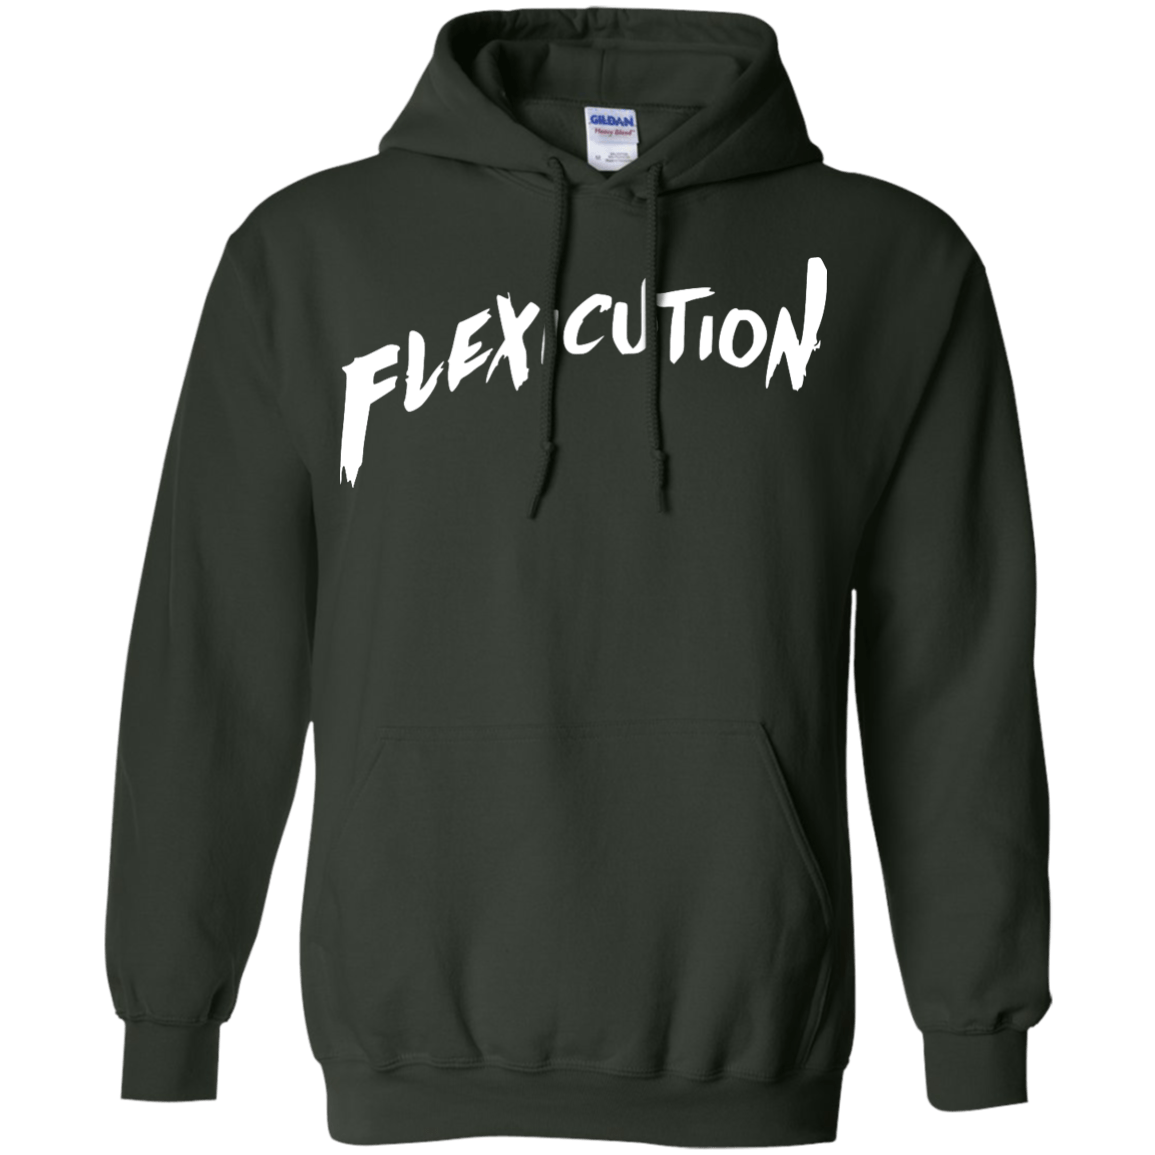 Flexicution Logic T Shirt, Hoodies, Tank Top